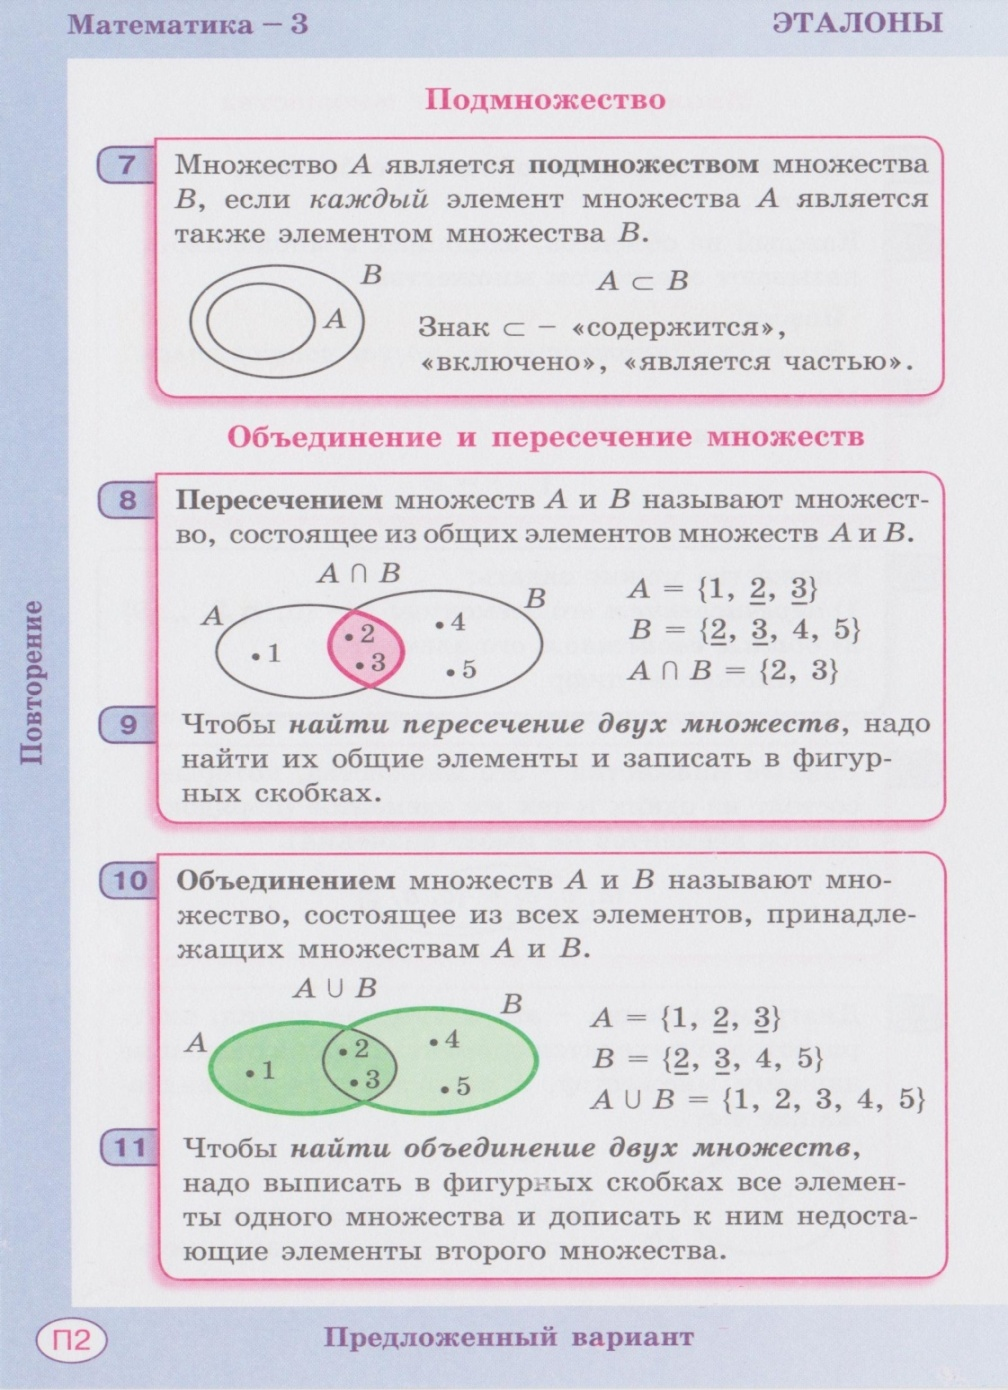 C:\Users\Настя\Pictures\2012-09-08 2\2 001.jpg